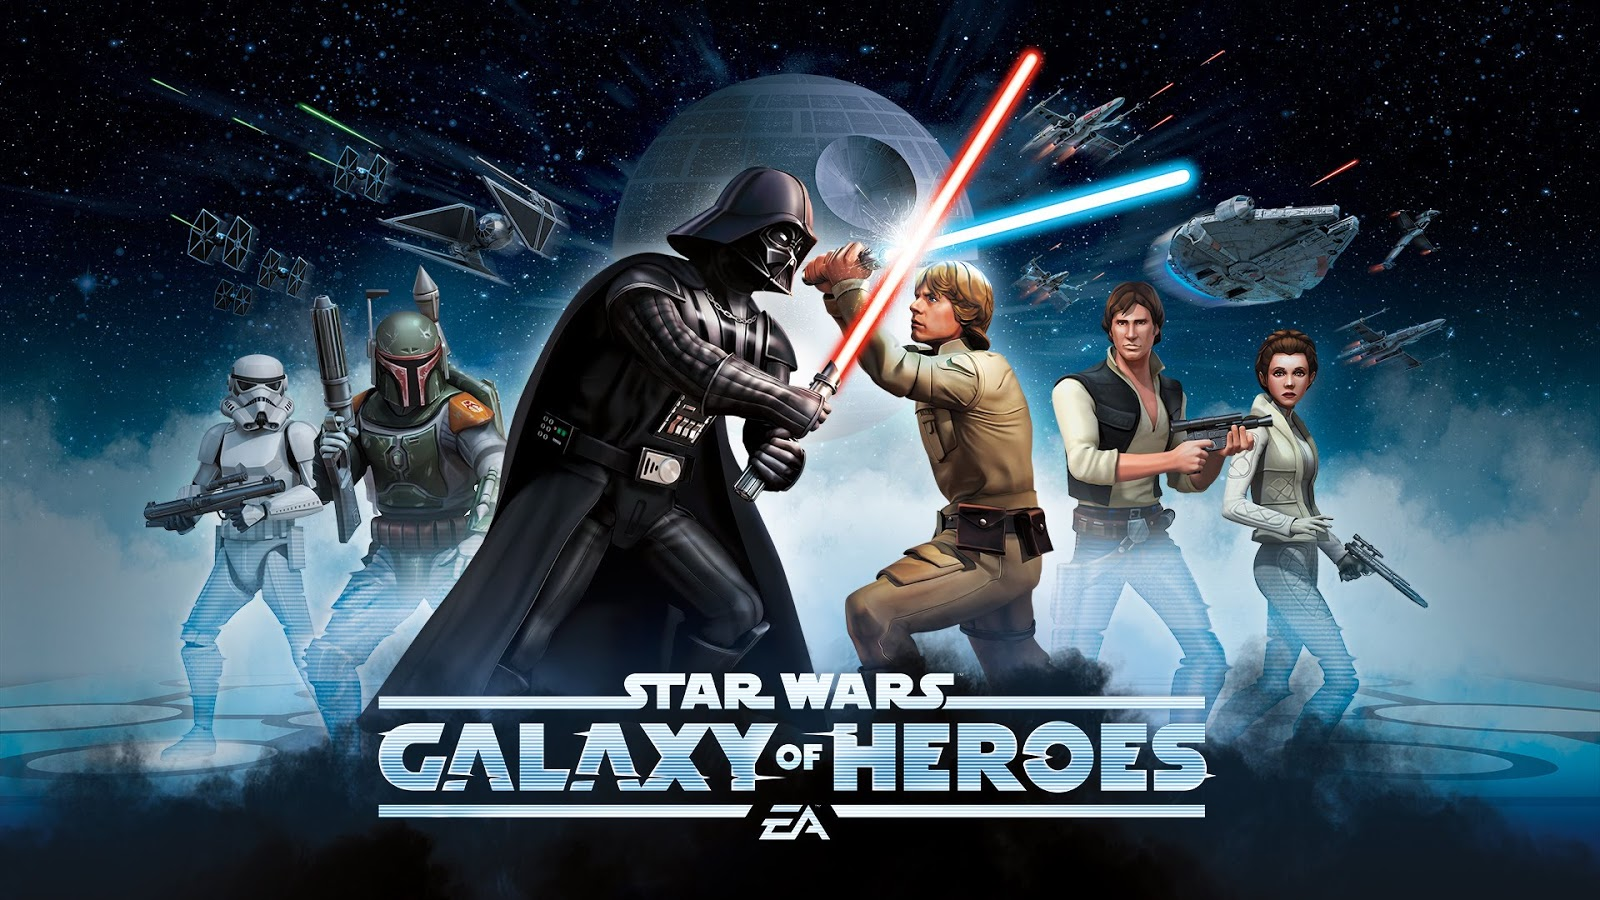 Star Wars: Galaxy of Heroes Blog: SWGOH New Guild Challenge Daily